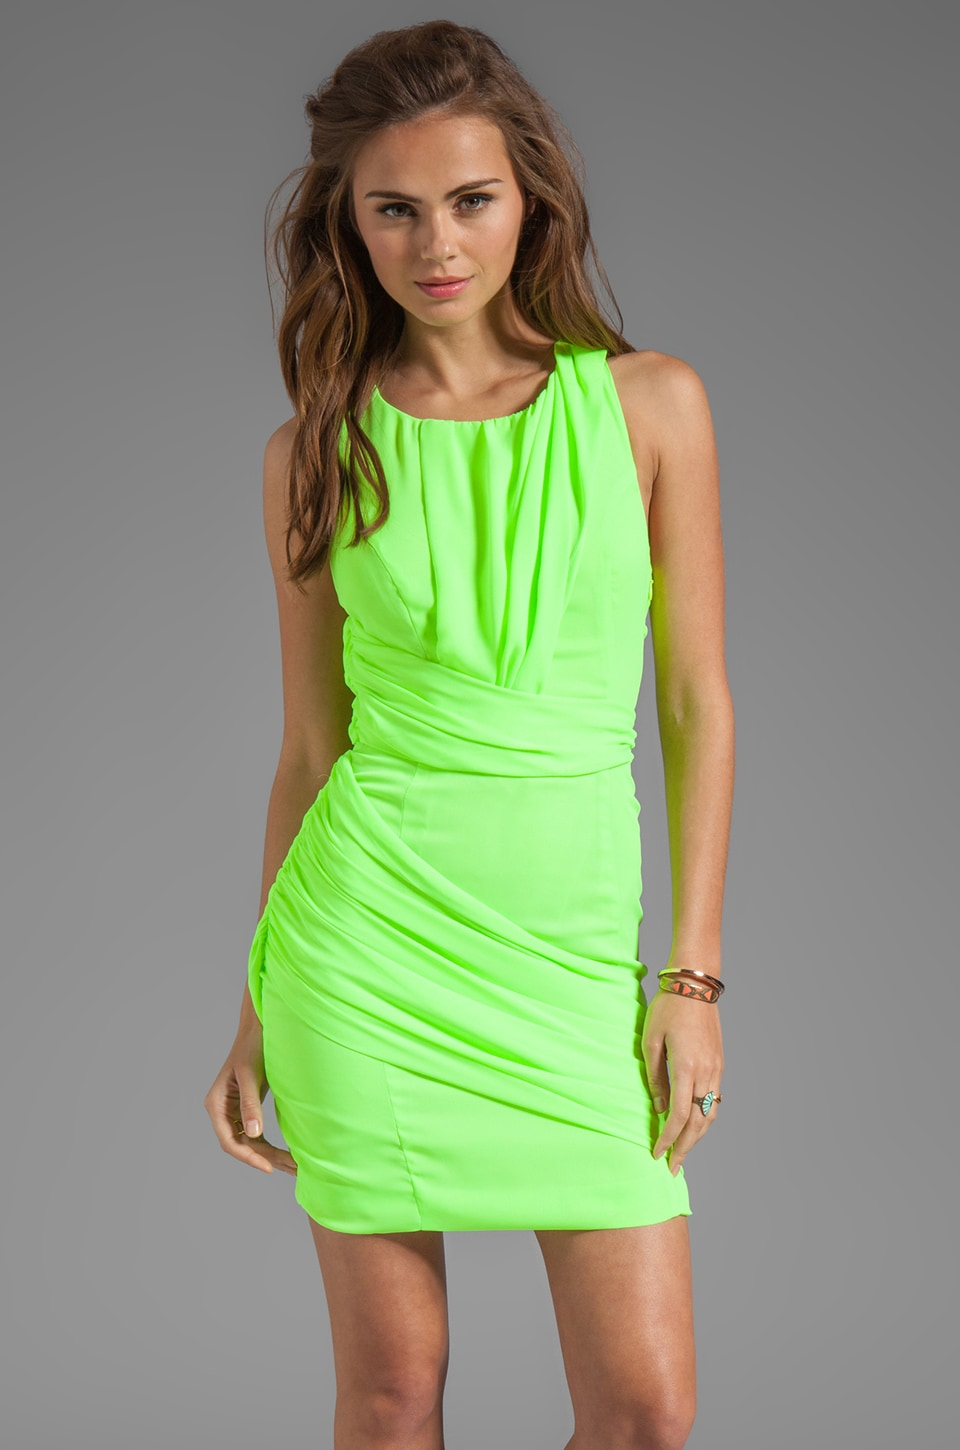 keepsake I Remember You Dress in Electric Lime